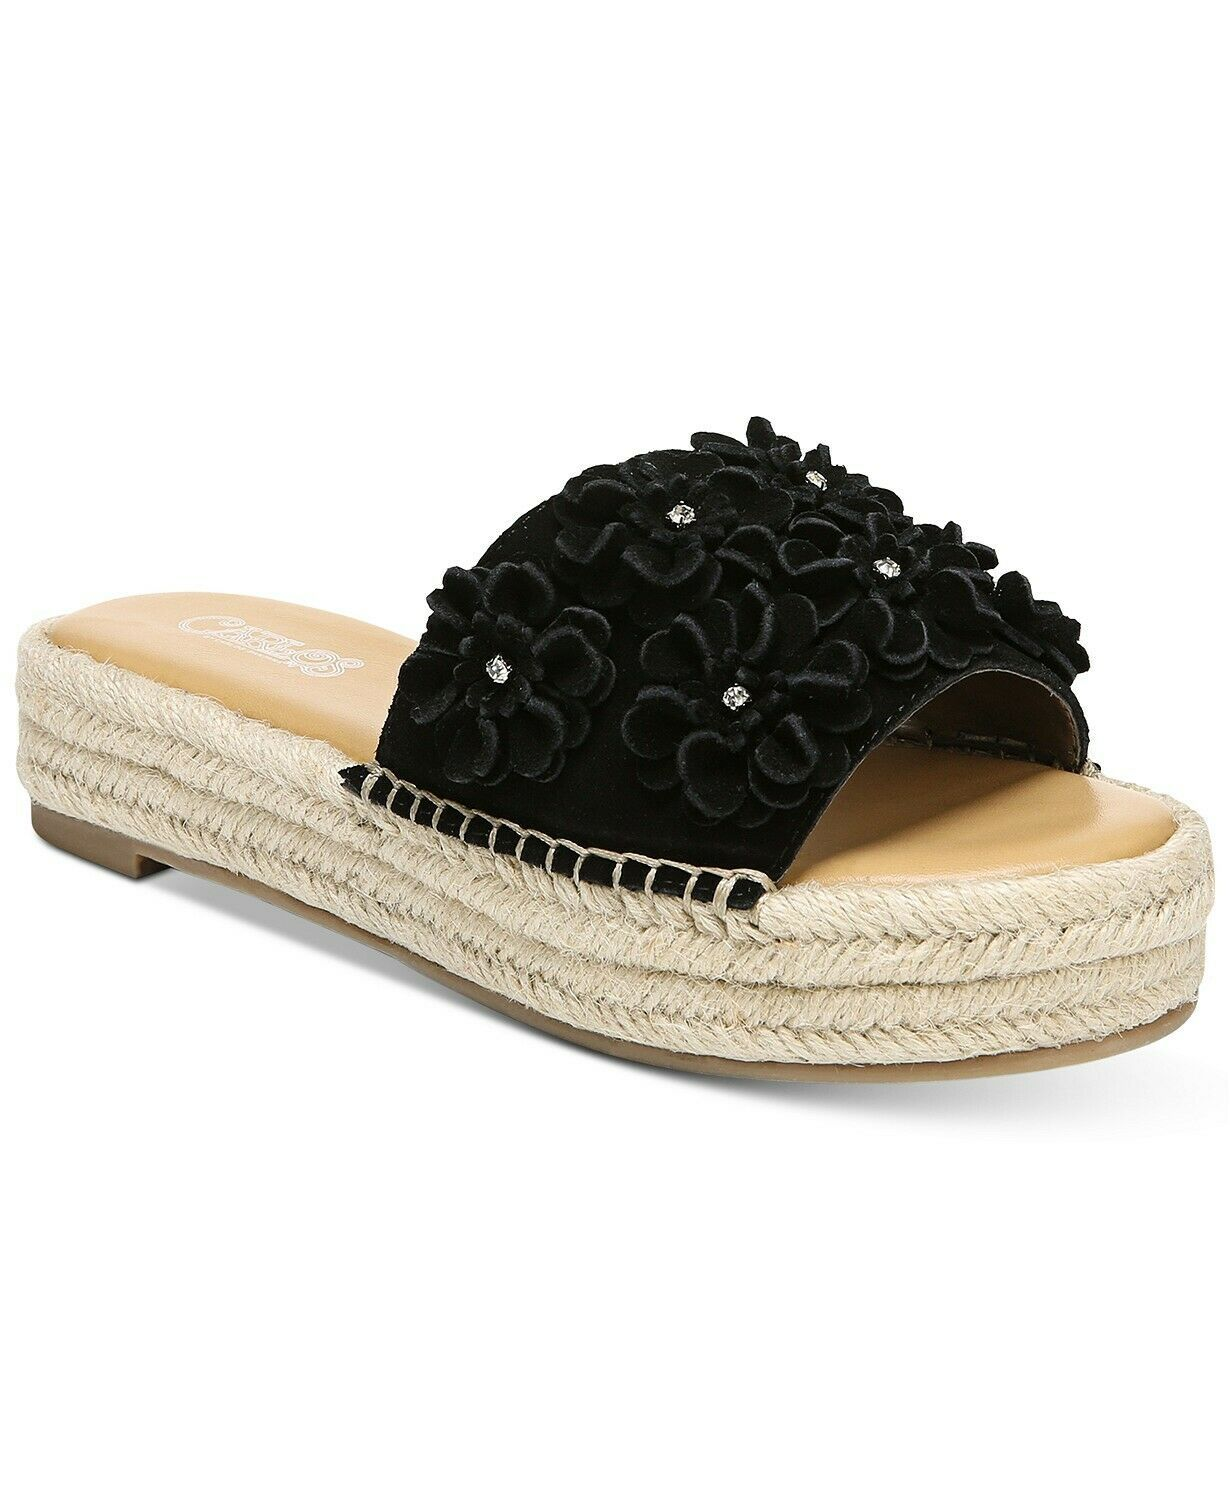 Carlos by Carlos Santana Chandler Sandals Black, Size 6 M